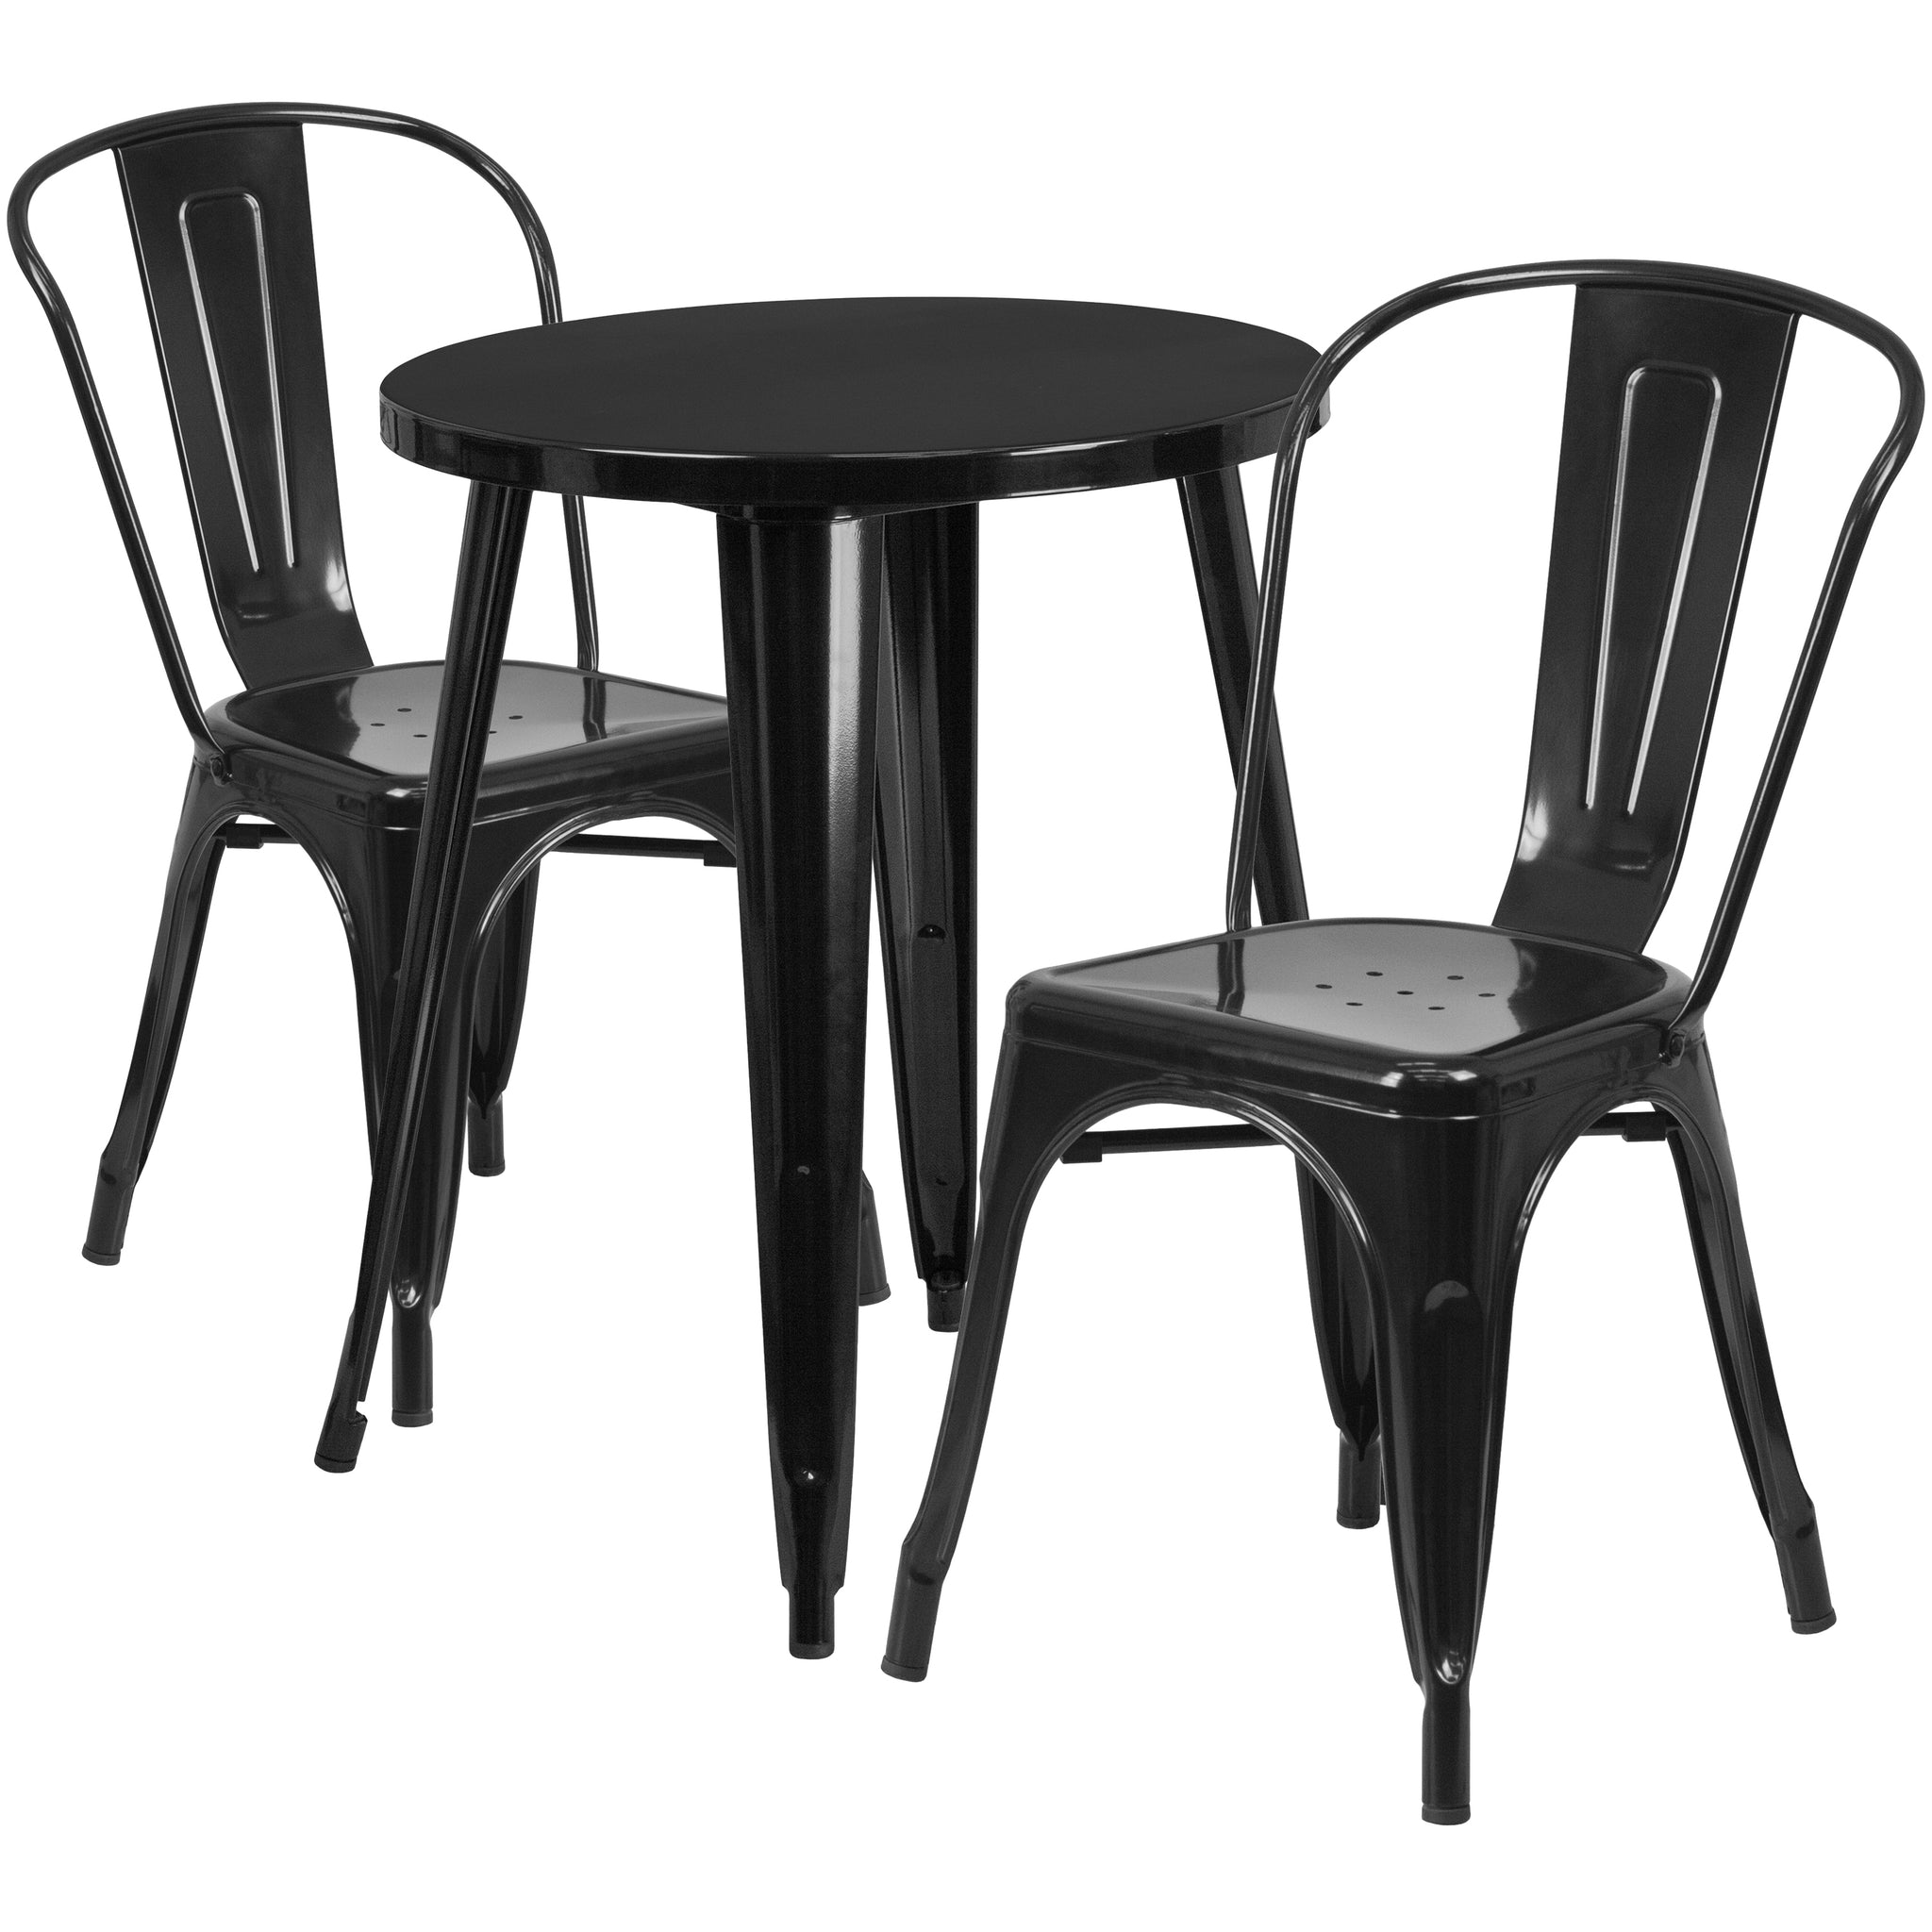 24'' Round Metal Indoor-Outdoor Table Set with 2 Cafe Chairs: Black-Antique Gold